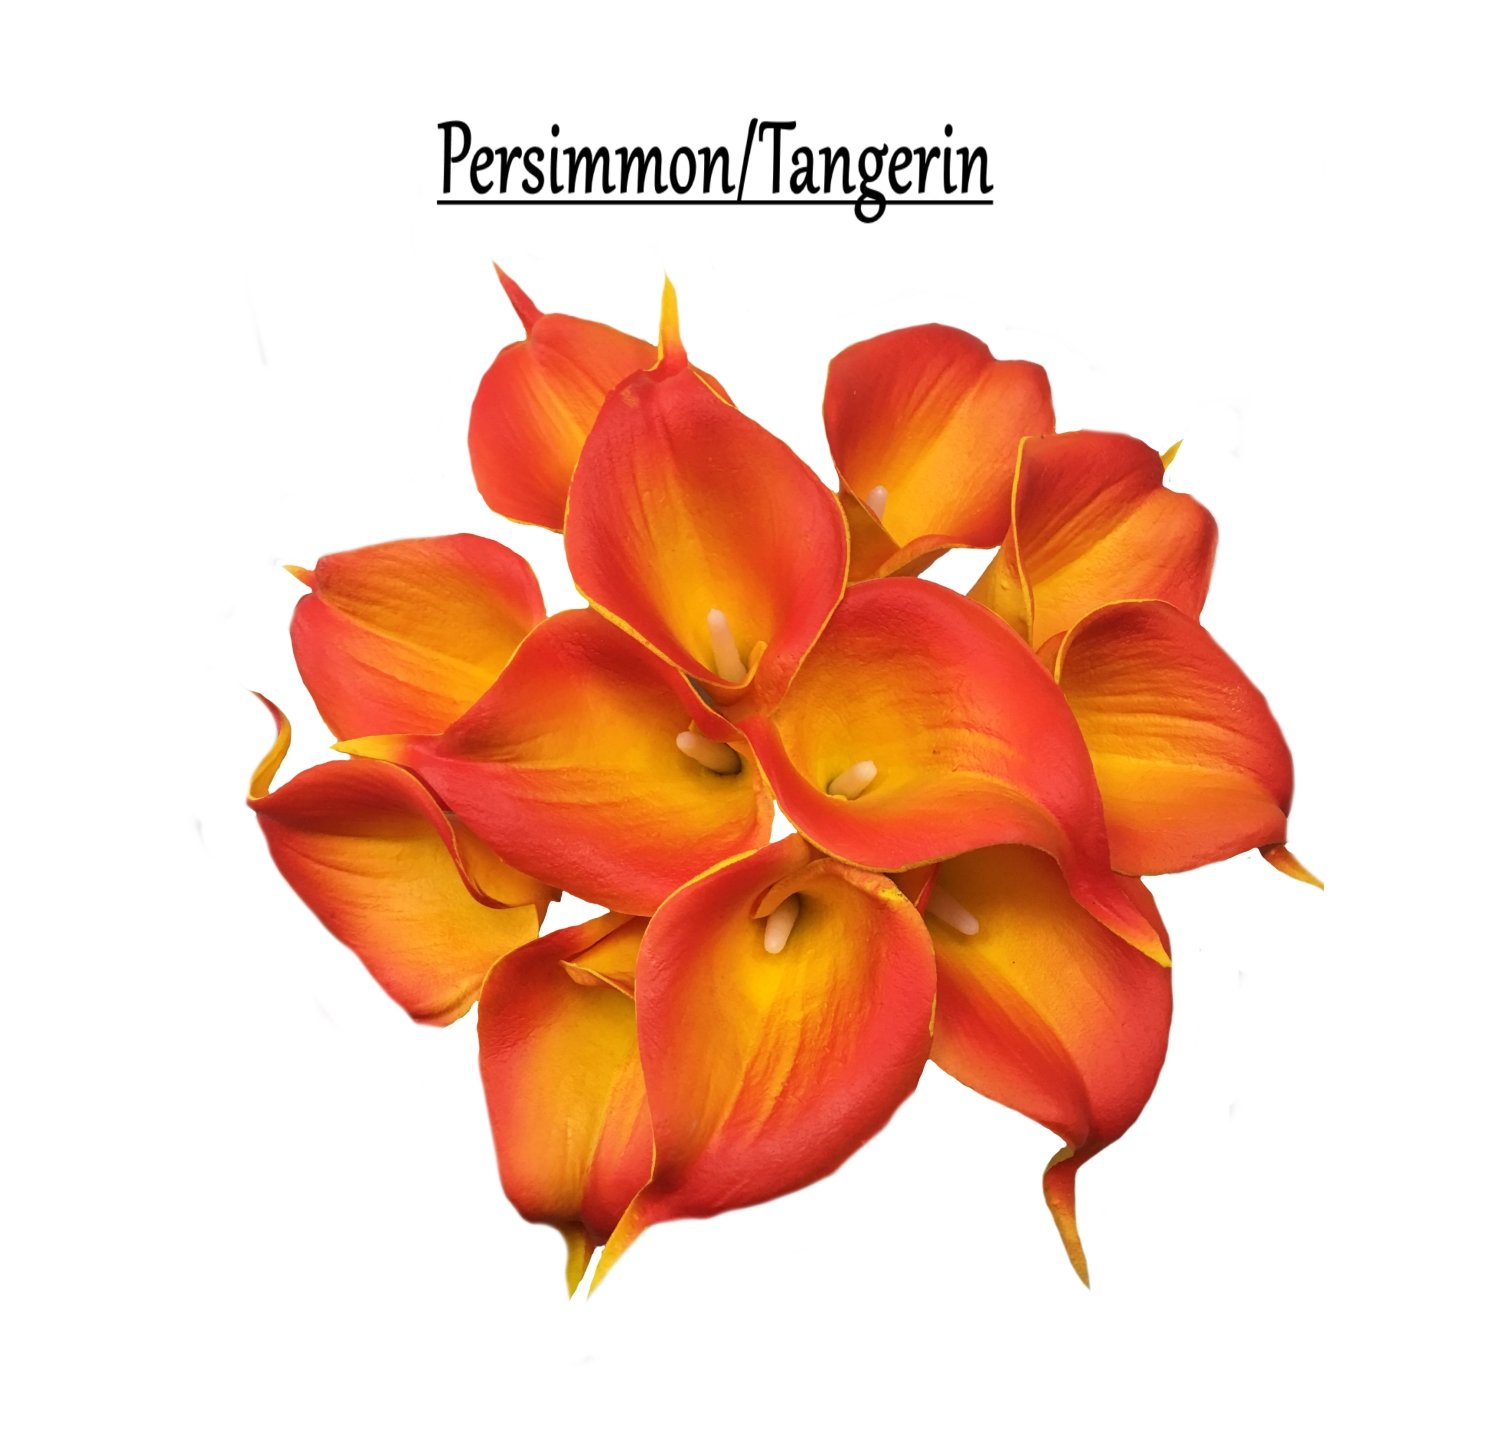 Angel Isabella, LLC 20pc Set of Keepsake Artificial Real Touch Calla Lily with Small Bloom Perfect for Making Bouquet, Boutonniere,Corsage (Persimmon Orange) by Angel Isabella, LLC